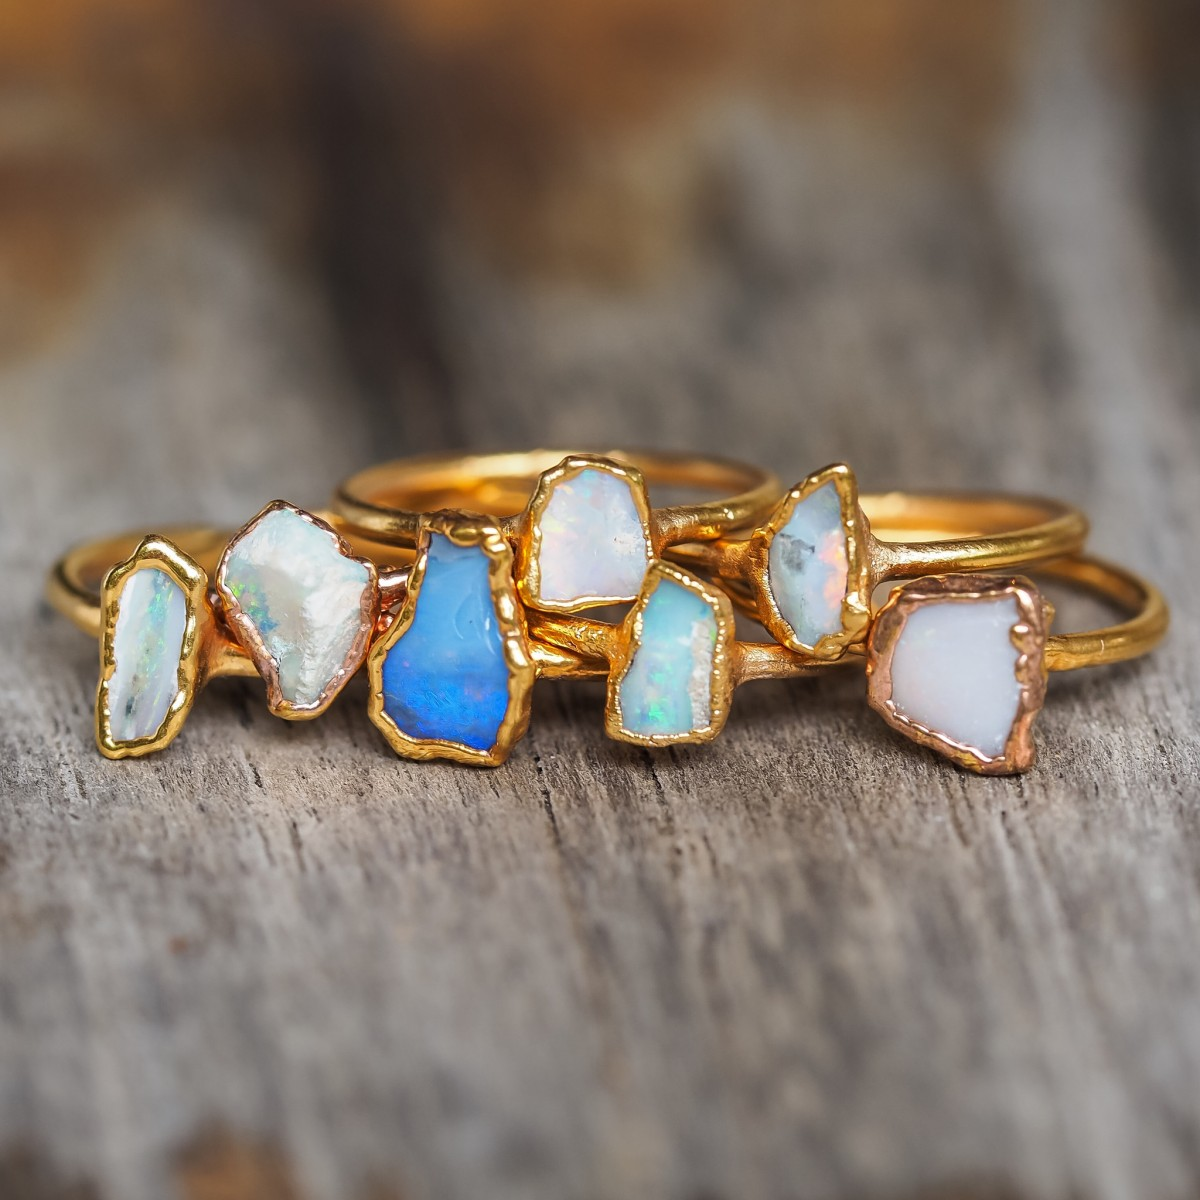 Dainty_Raw_Opal_and_Gold_Ring_Bohemian_Gypsy_Jewels_Indie_and_Harper